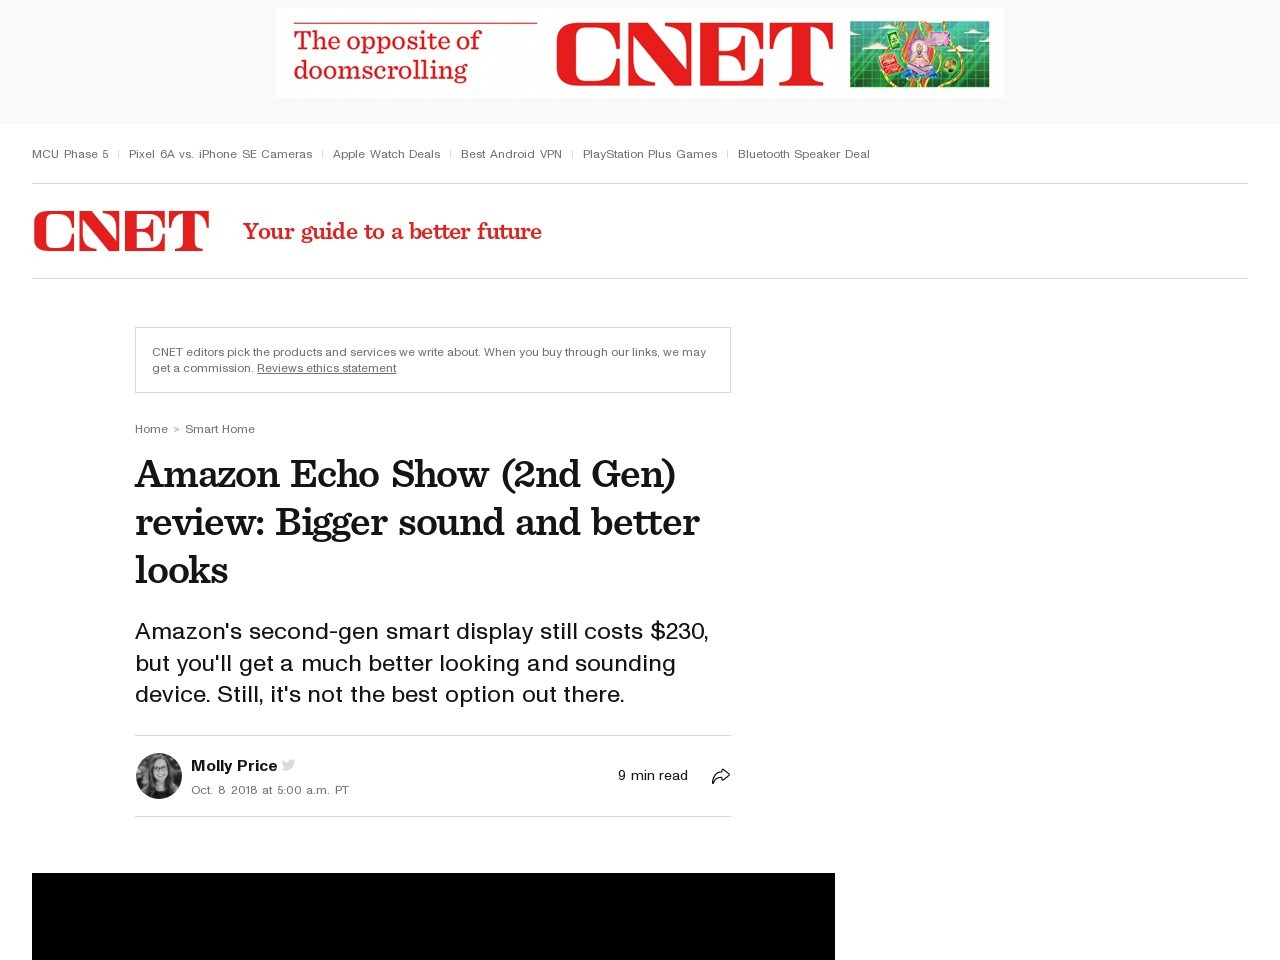 Amazon Echo Show 2.0 review: Amazon's revamped Echo Show has bigger sound and better looks     – CNET